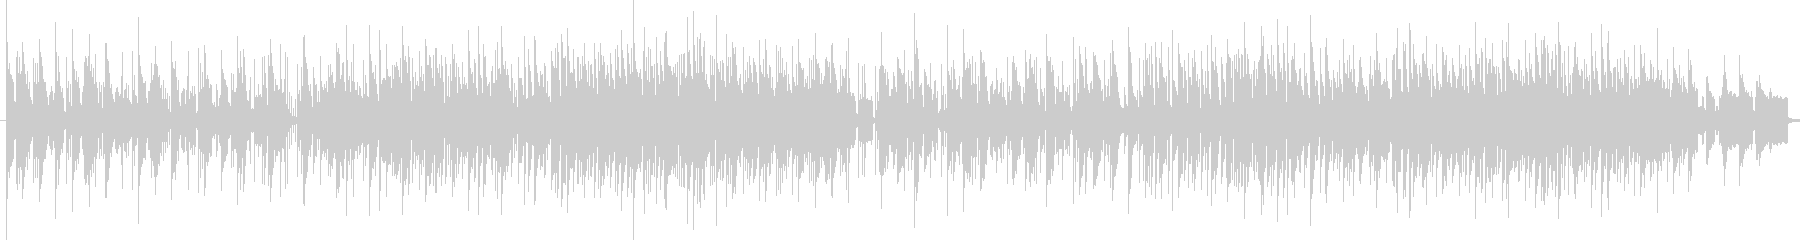 Fashionable and chic melody's unreproduced waveform